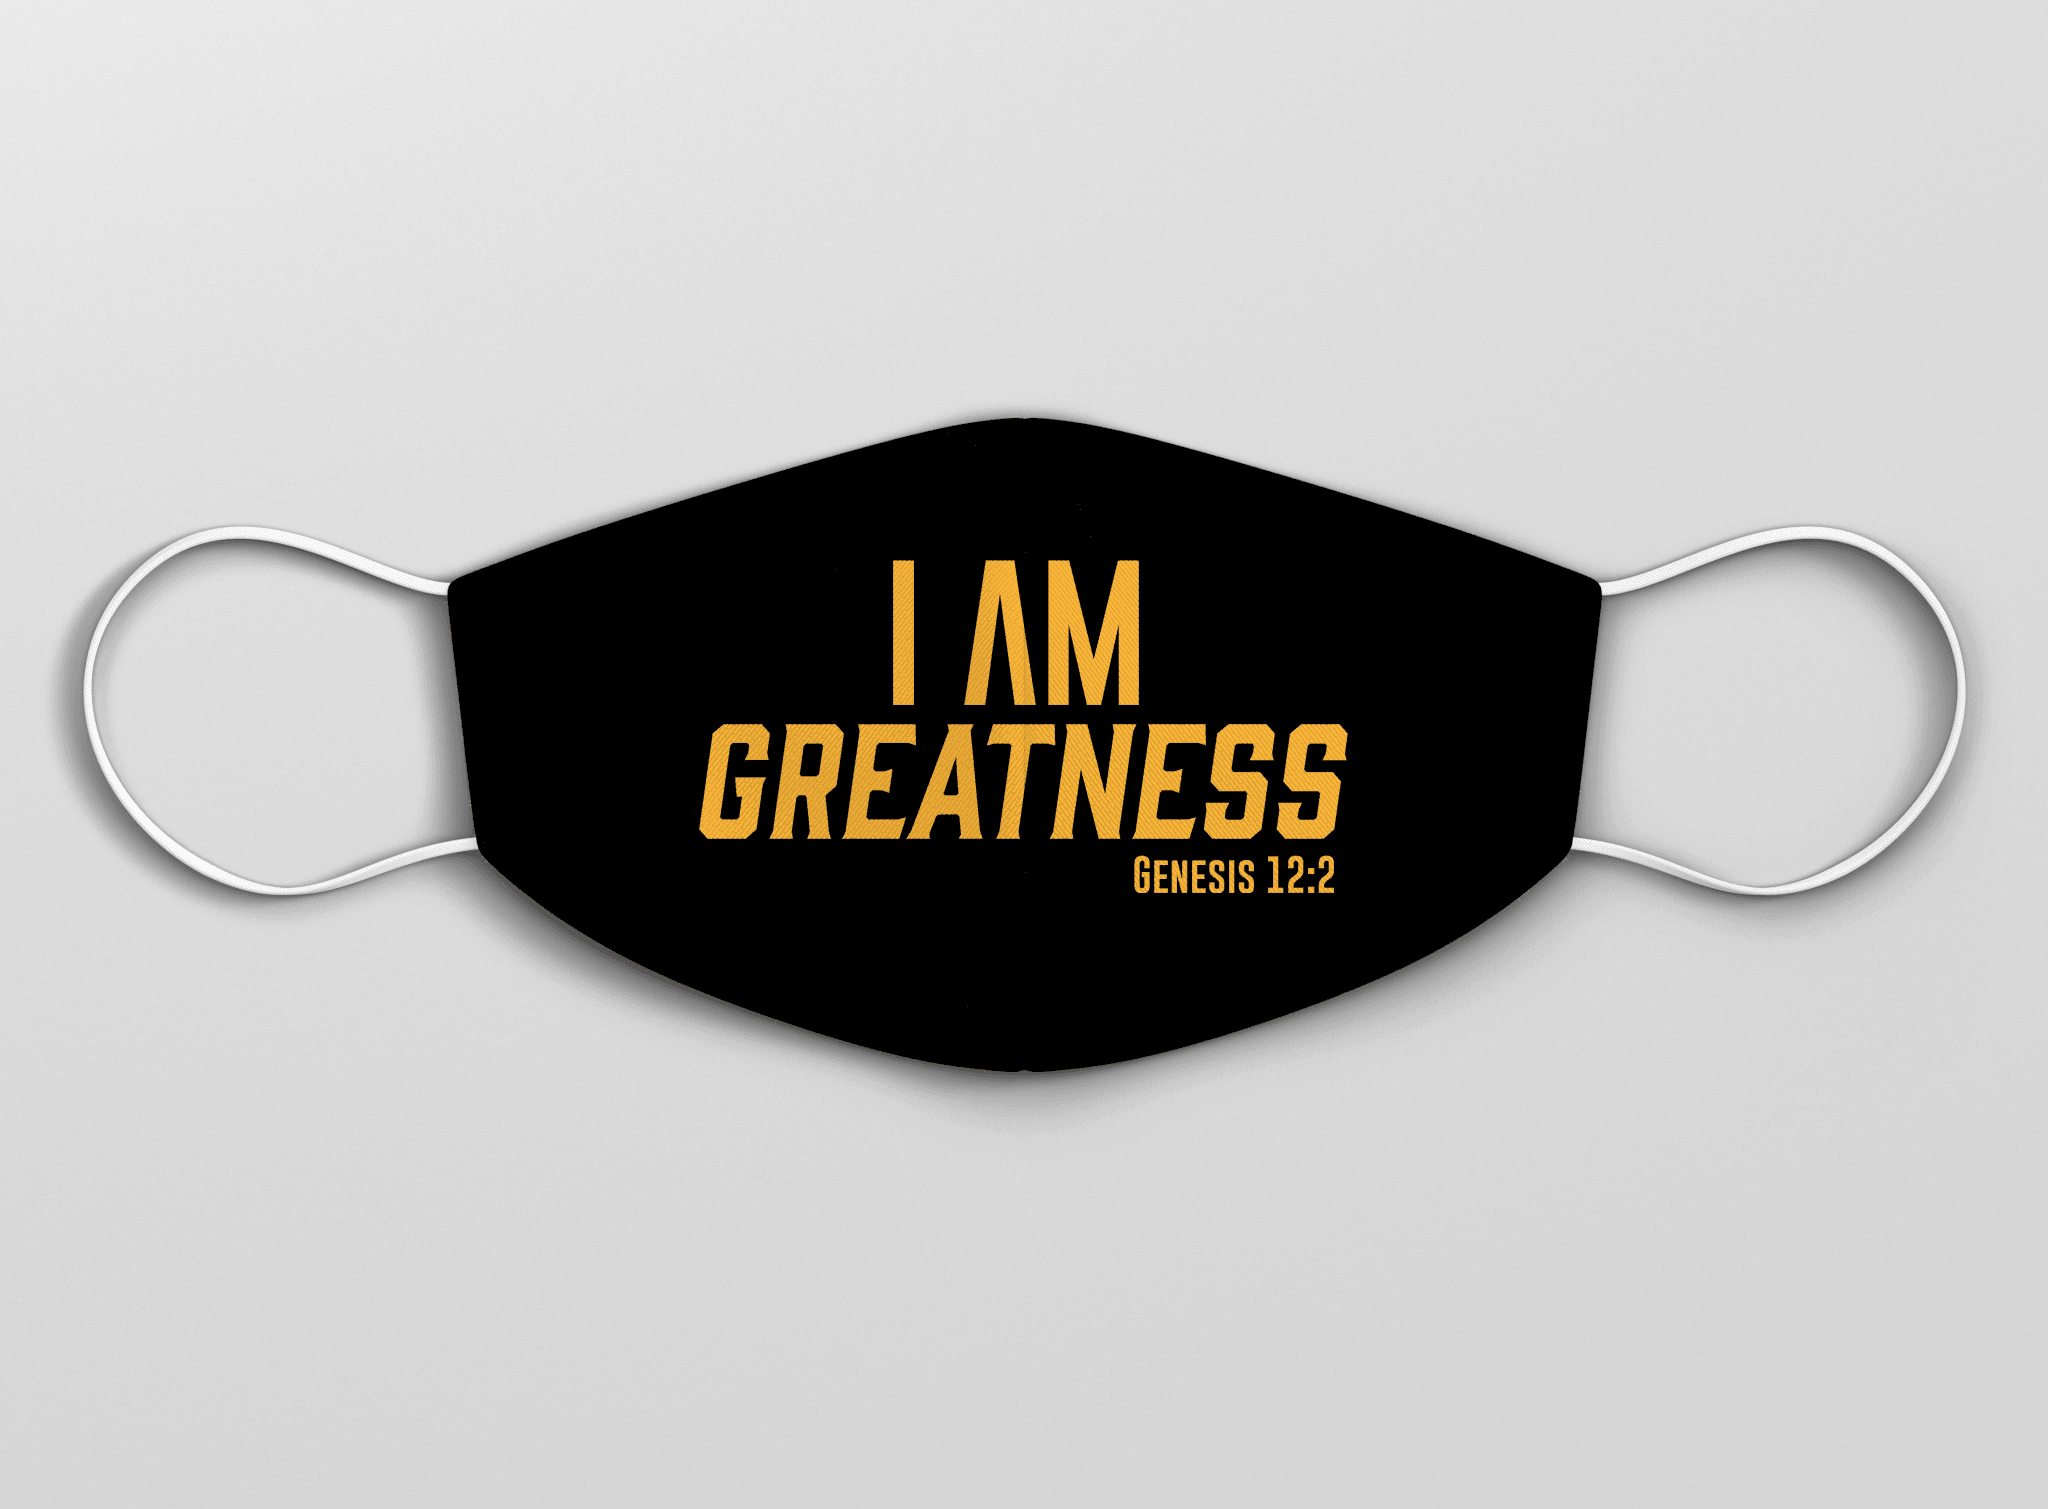 I AM Greatness Mask (Black & Gold) - Vision Apparel Inc.